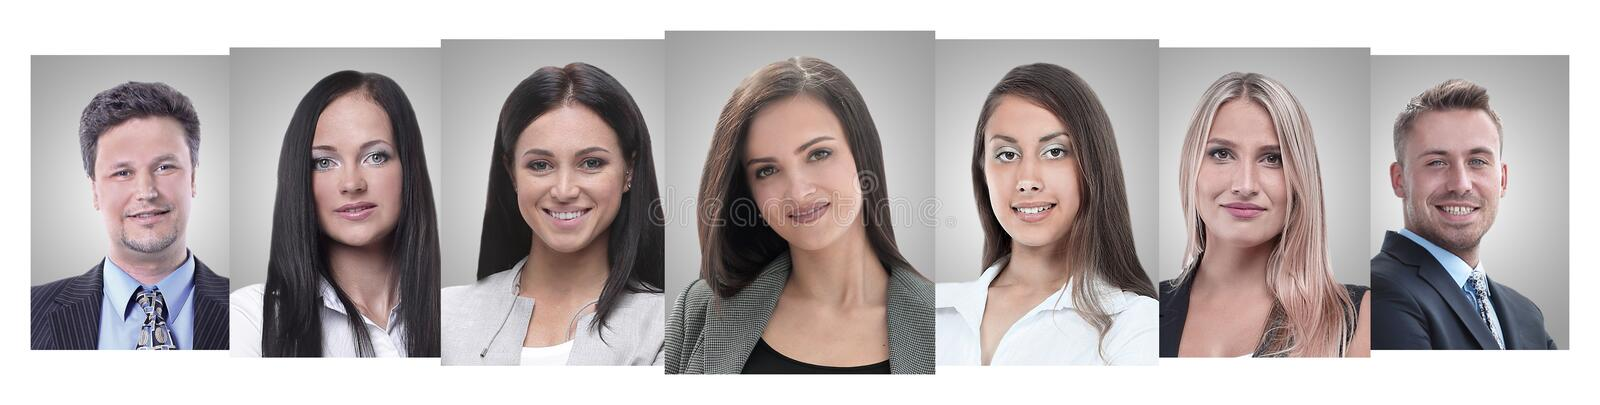 Panoramic collage of portraits of young entrepreneurs. stock photography